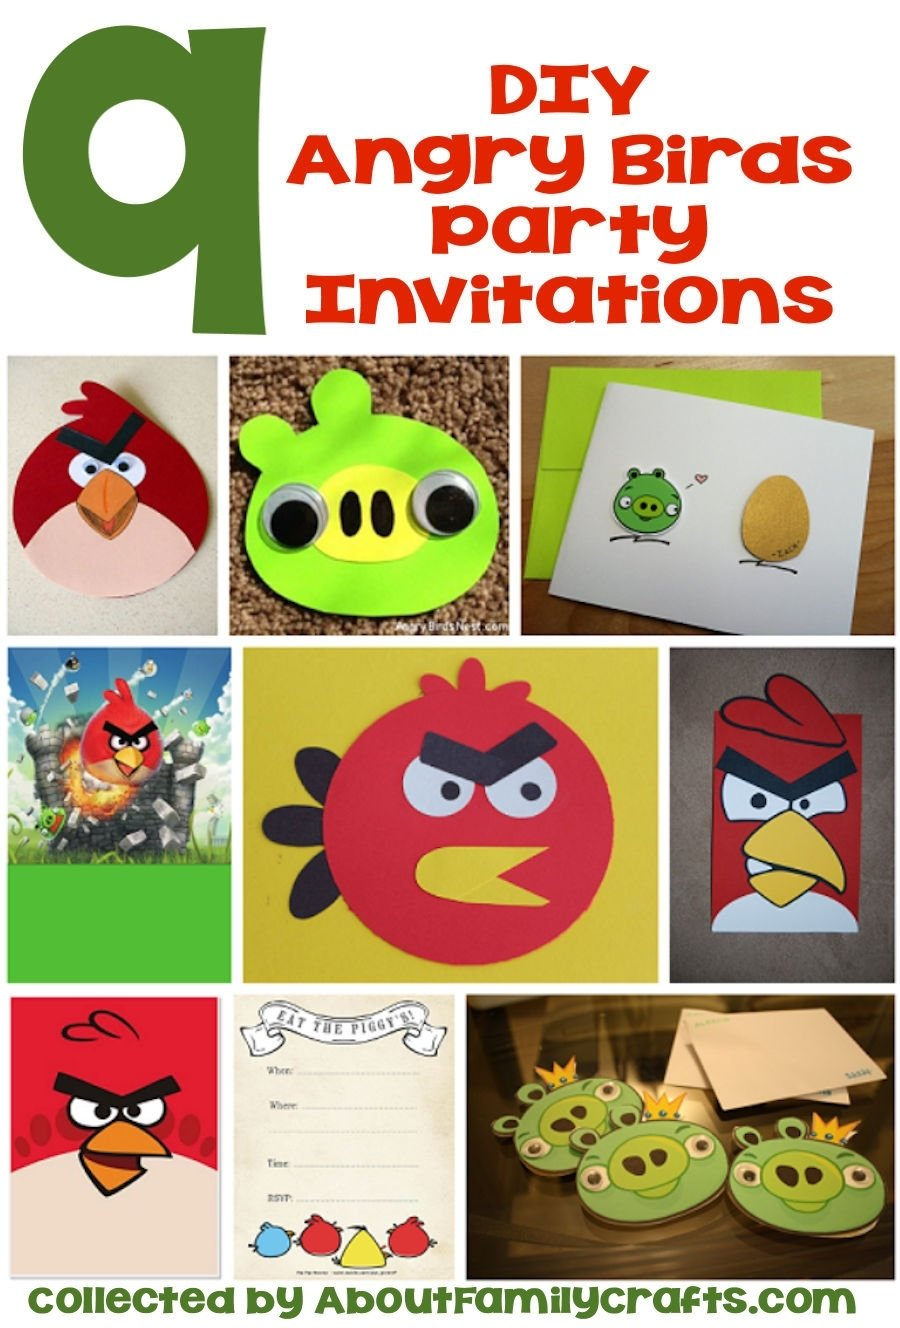 10 Famous Angry Bird Birthday Party Ideas 65 diy angry birds party ideas about family crafts 1 2020